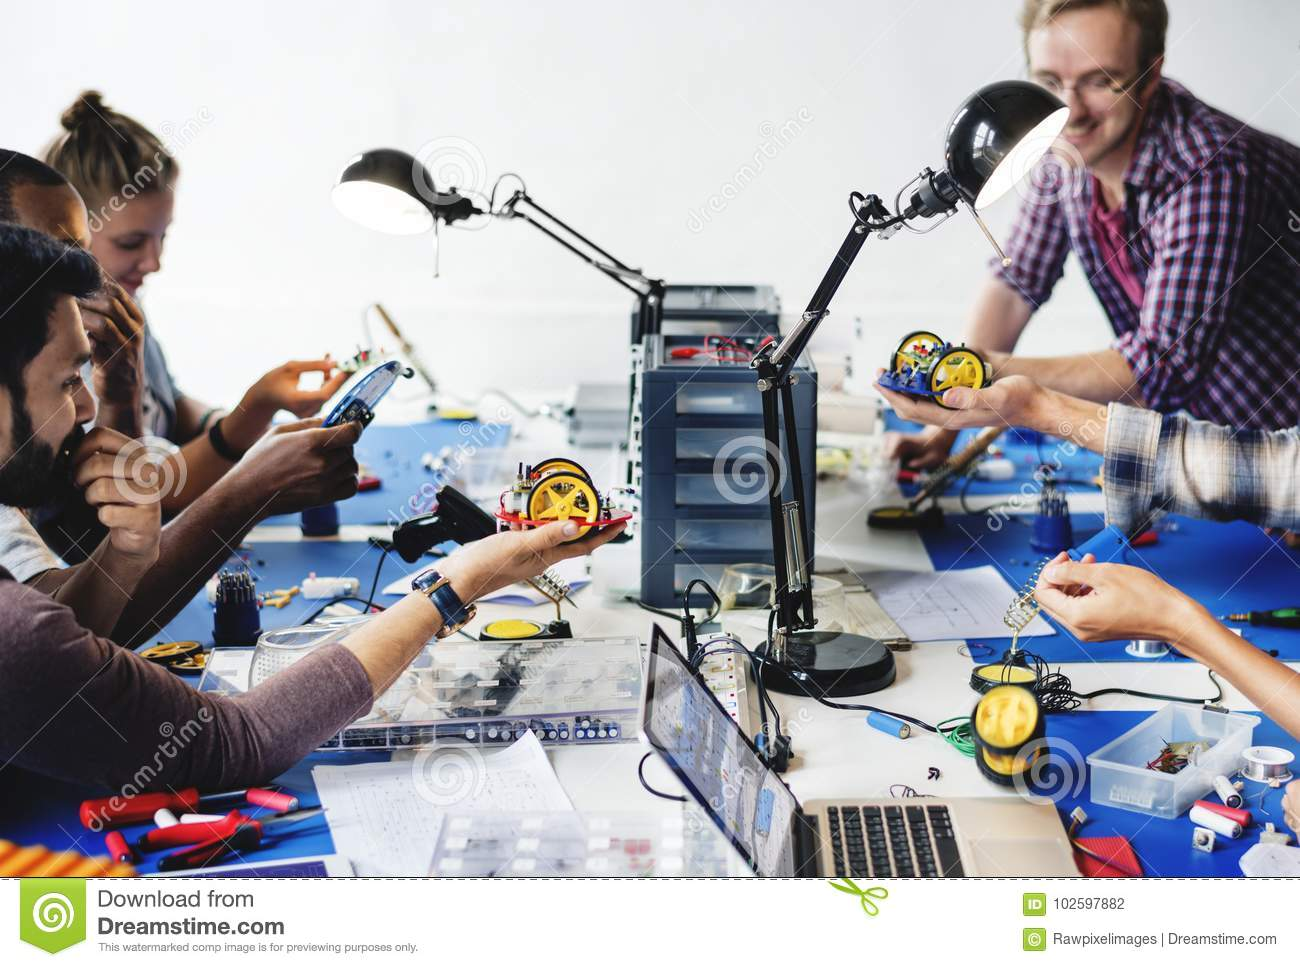 Electrical technicians working on robot electronics parts